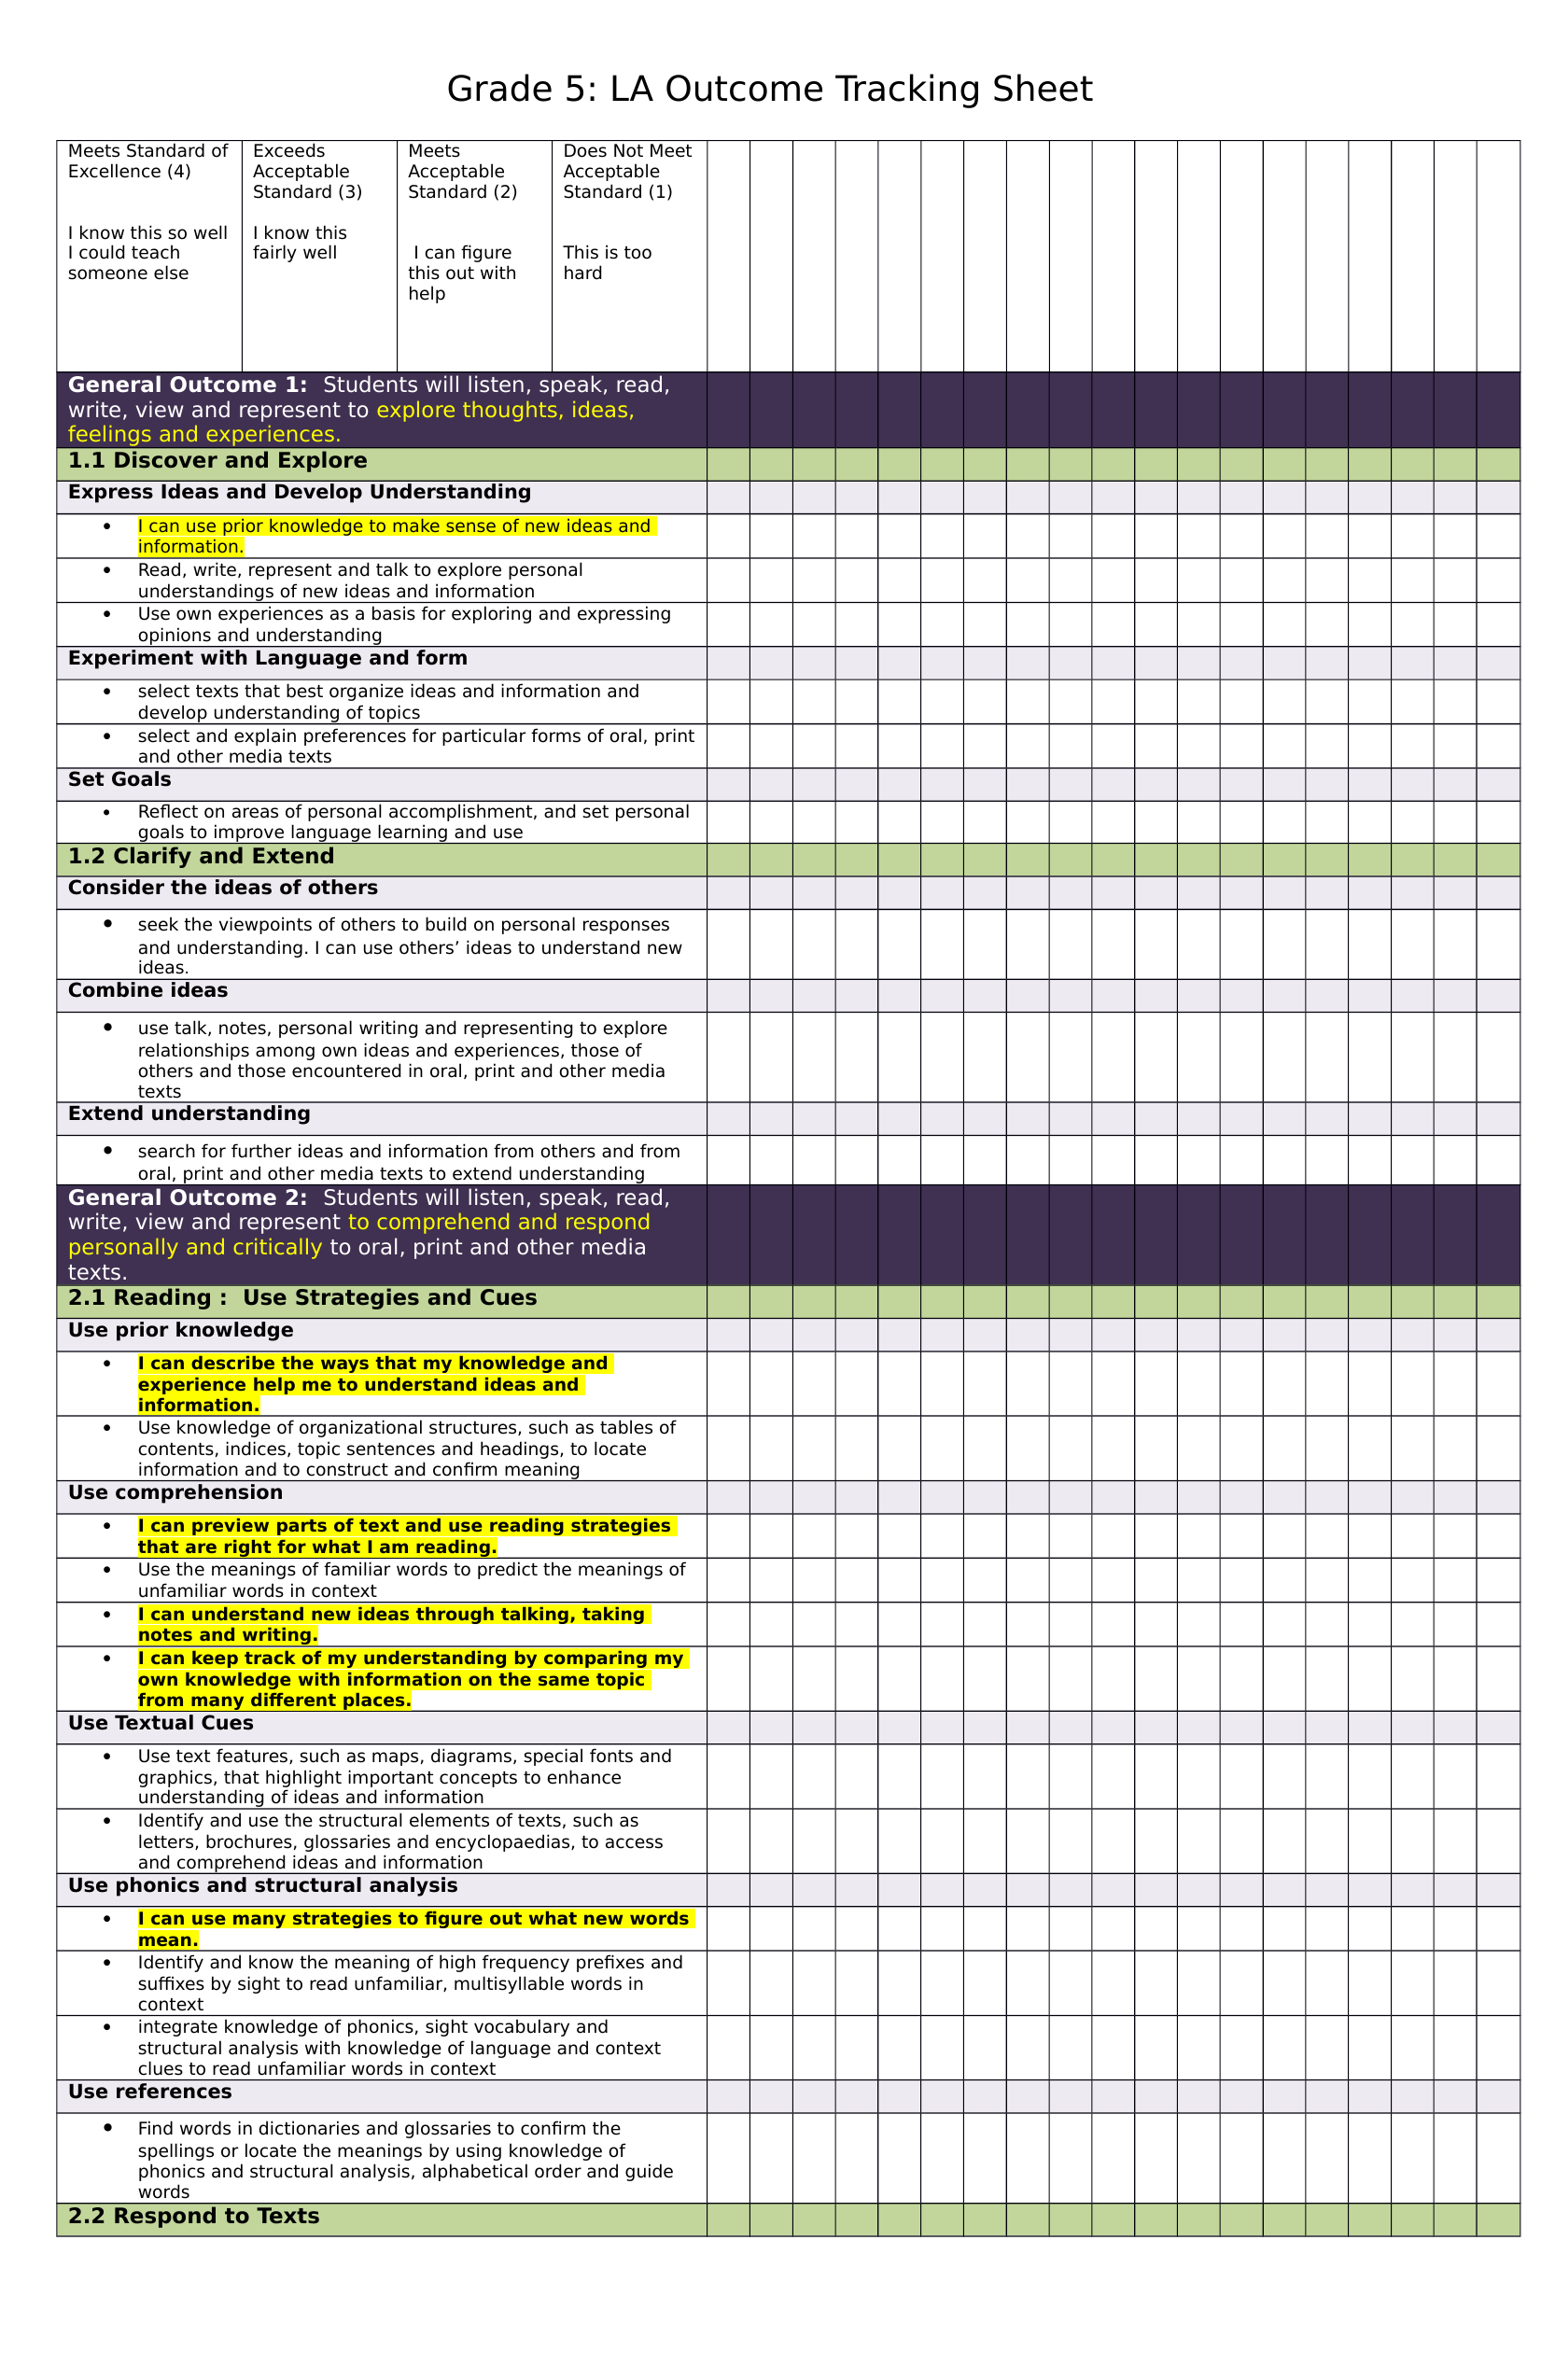 G5 outcome tracking sheet Resource Preview